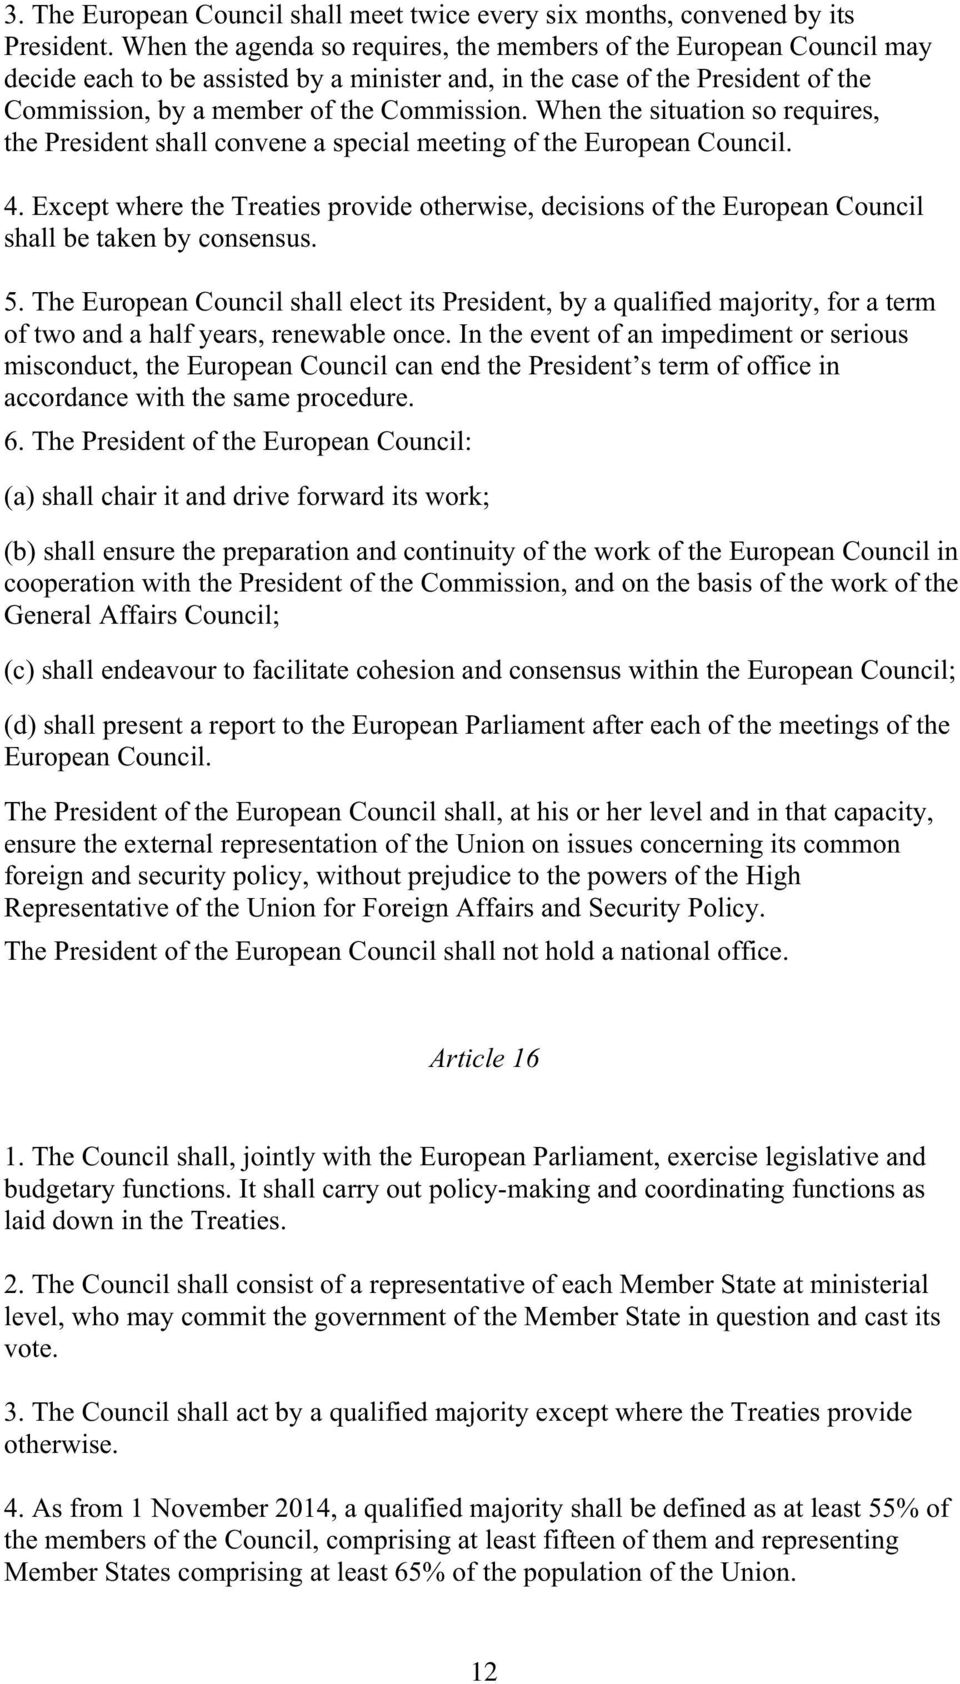 When the situation so requires, the President shall convene a special meeting of the European Council. 4.